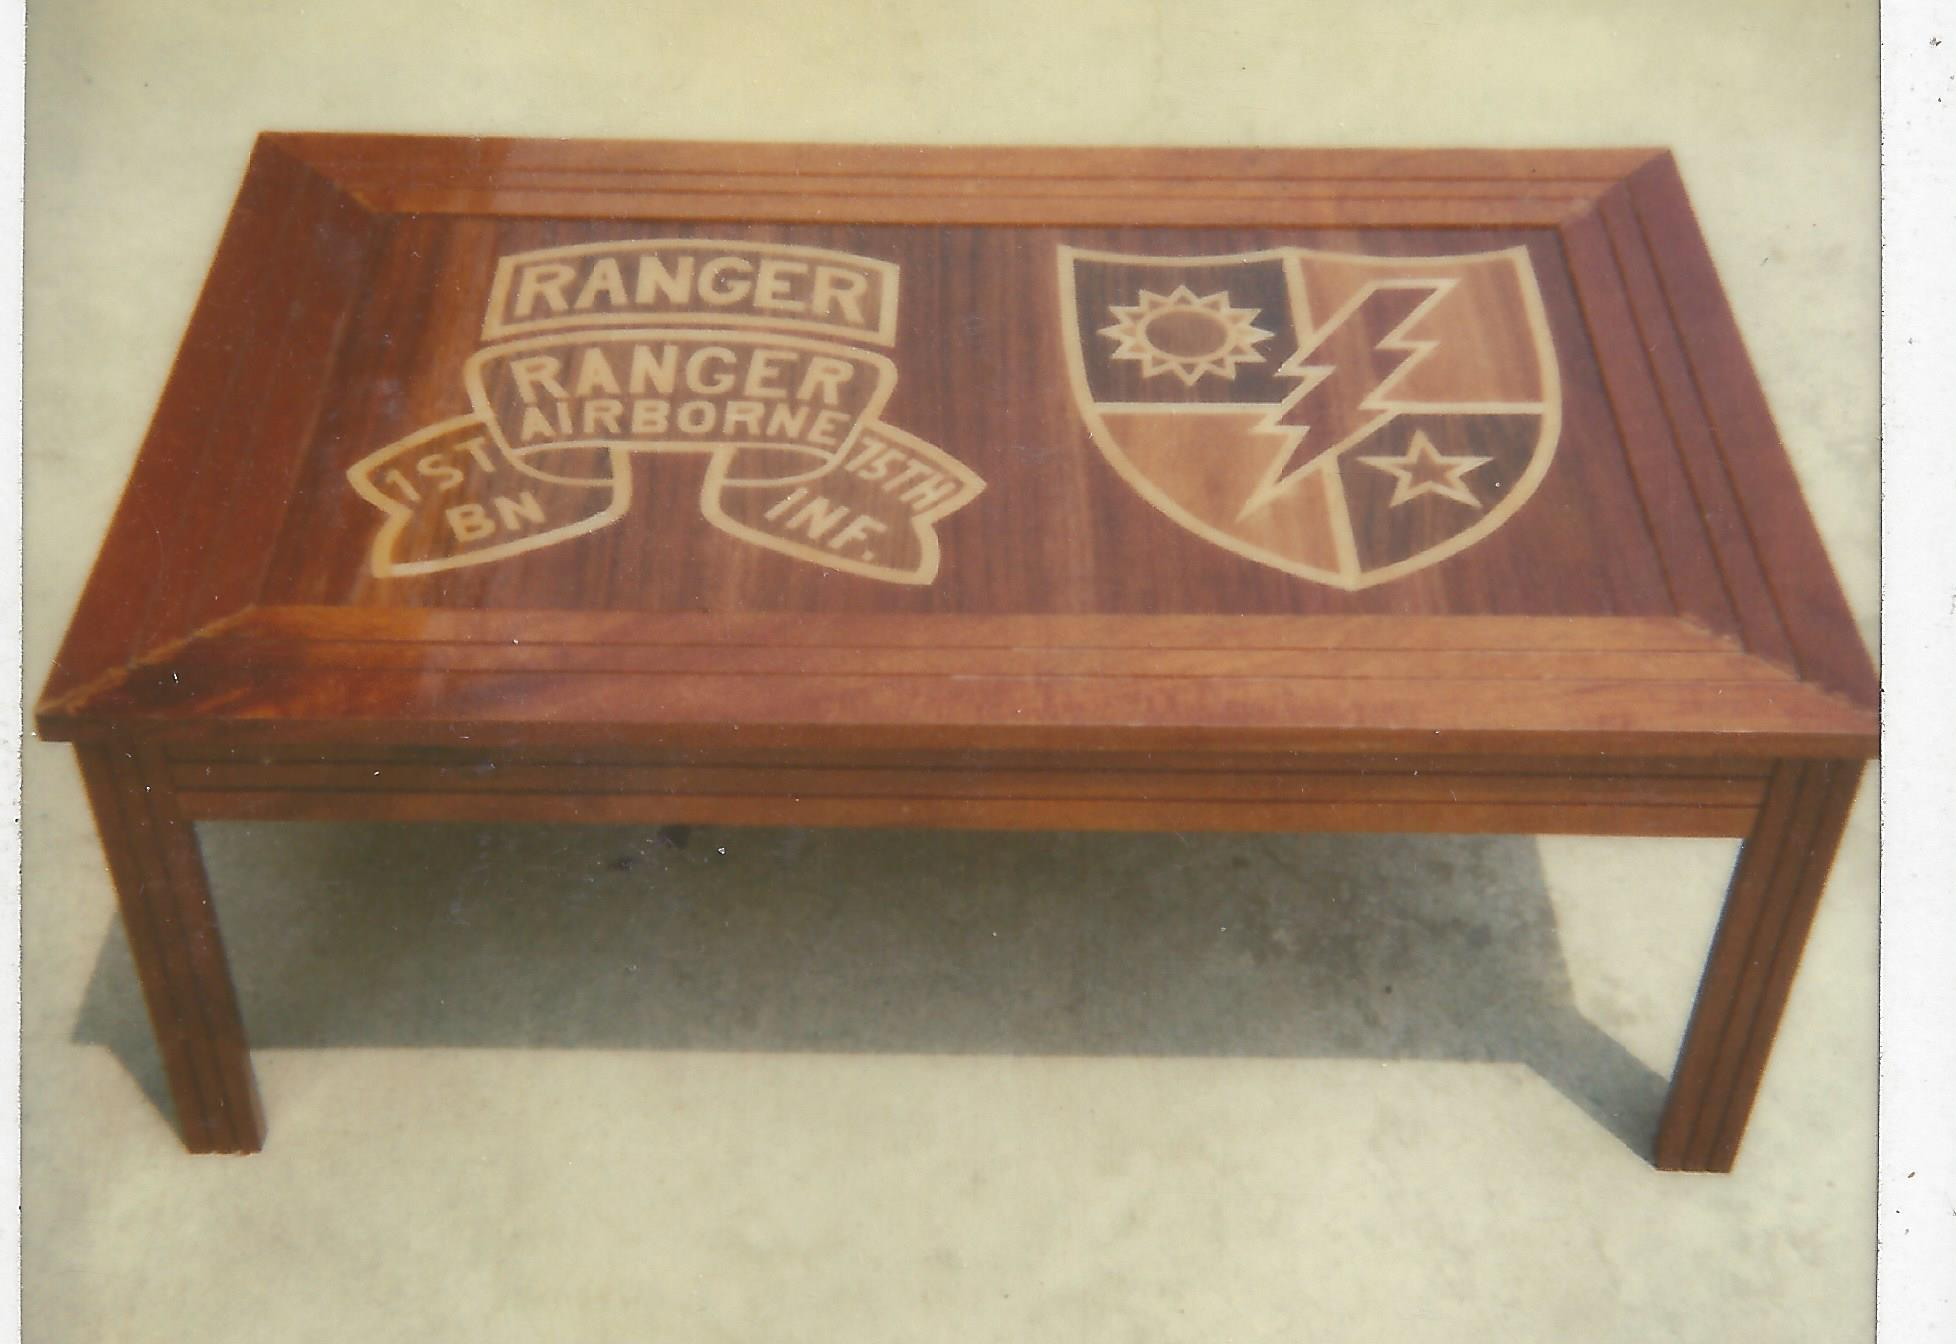 inlaid table with ranger